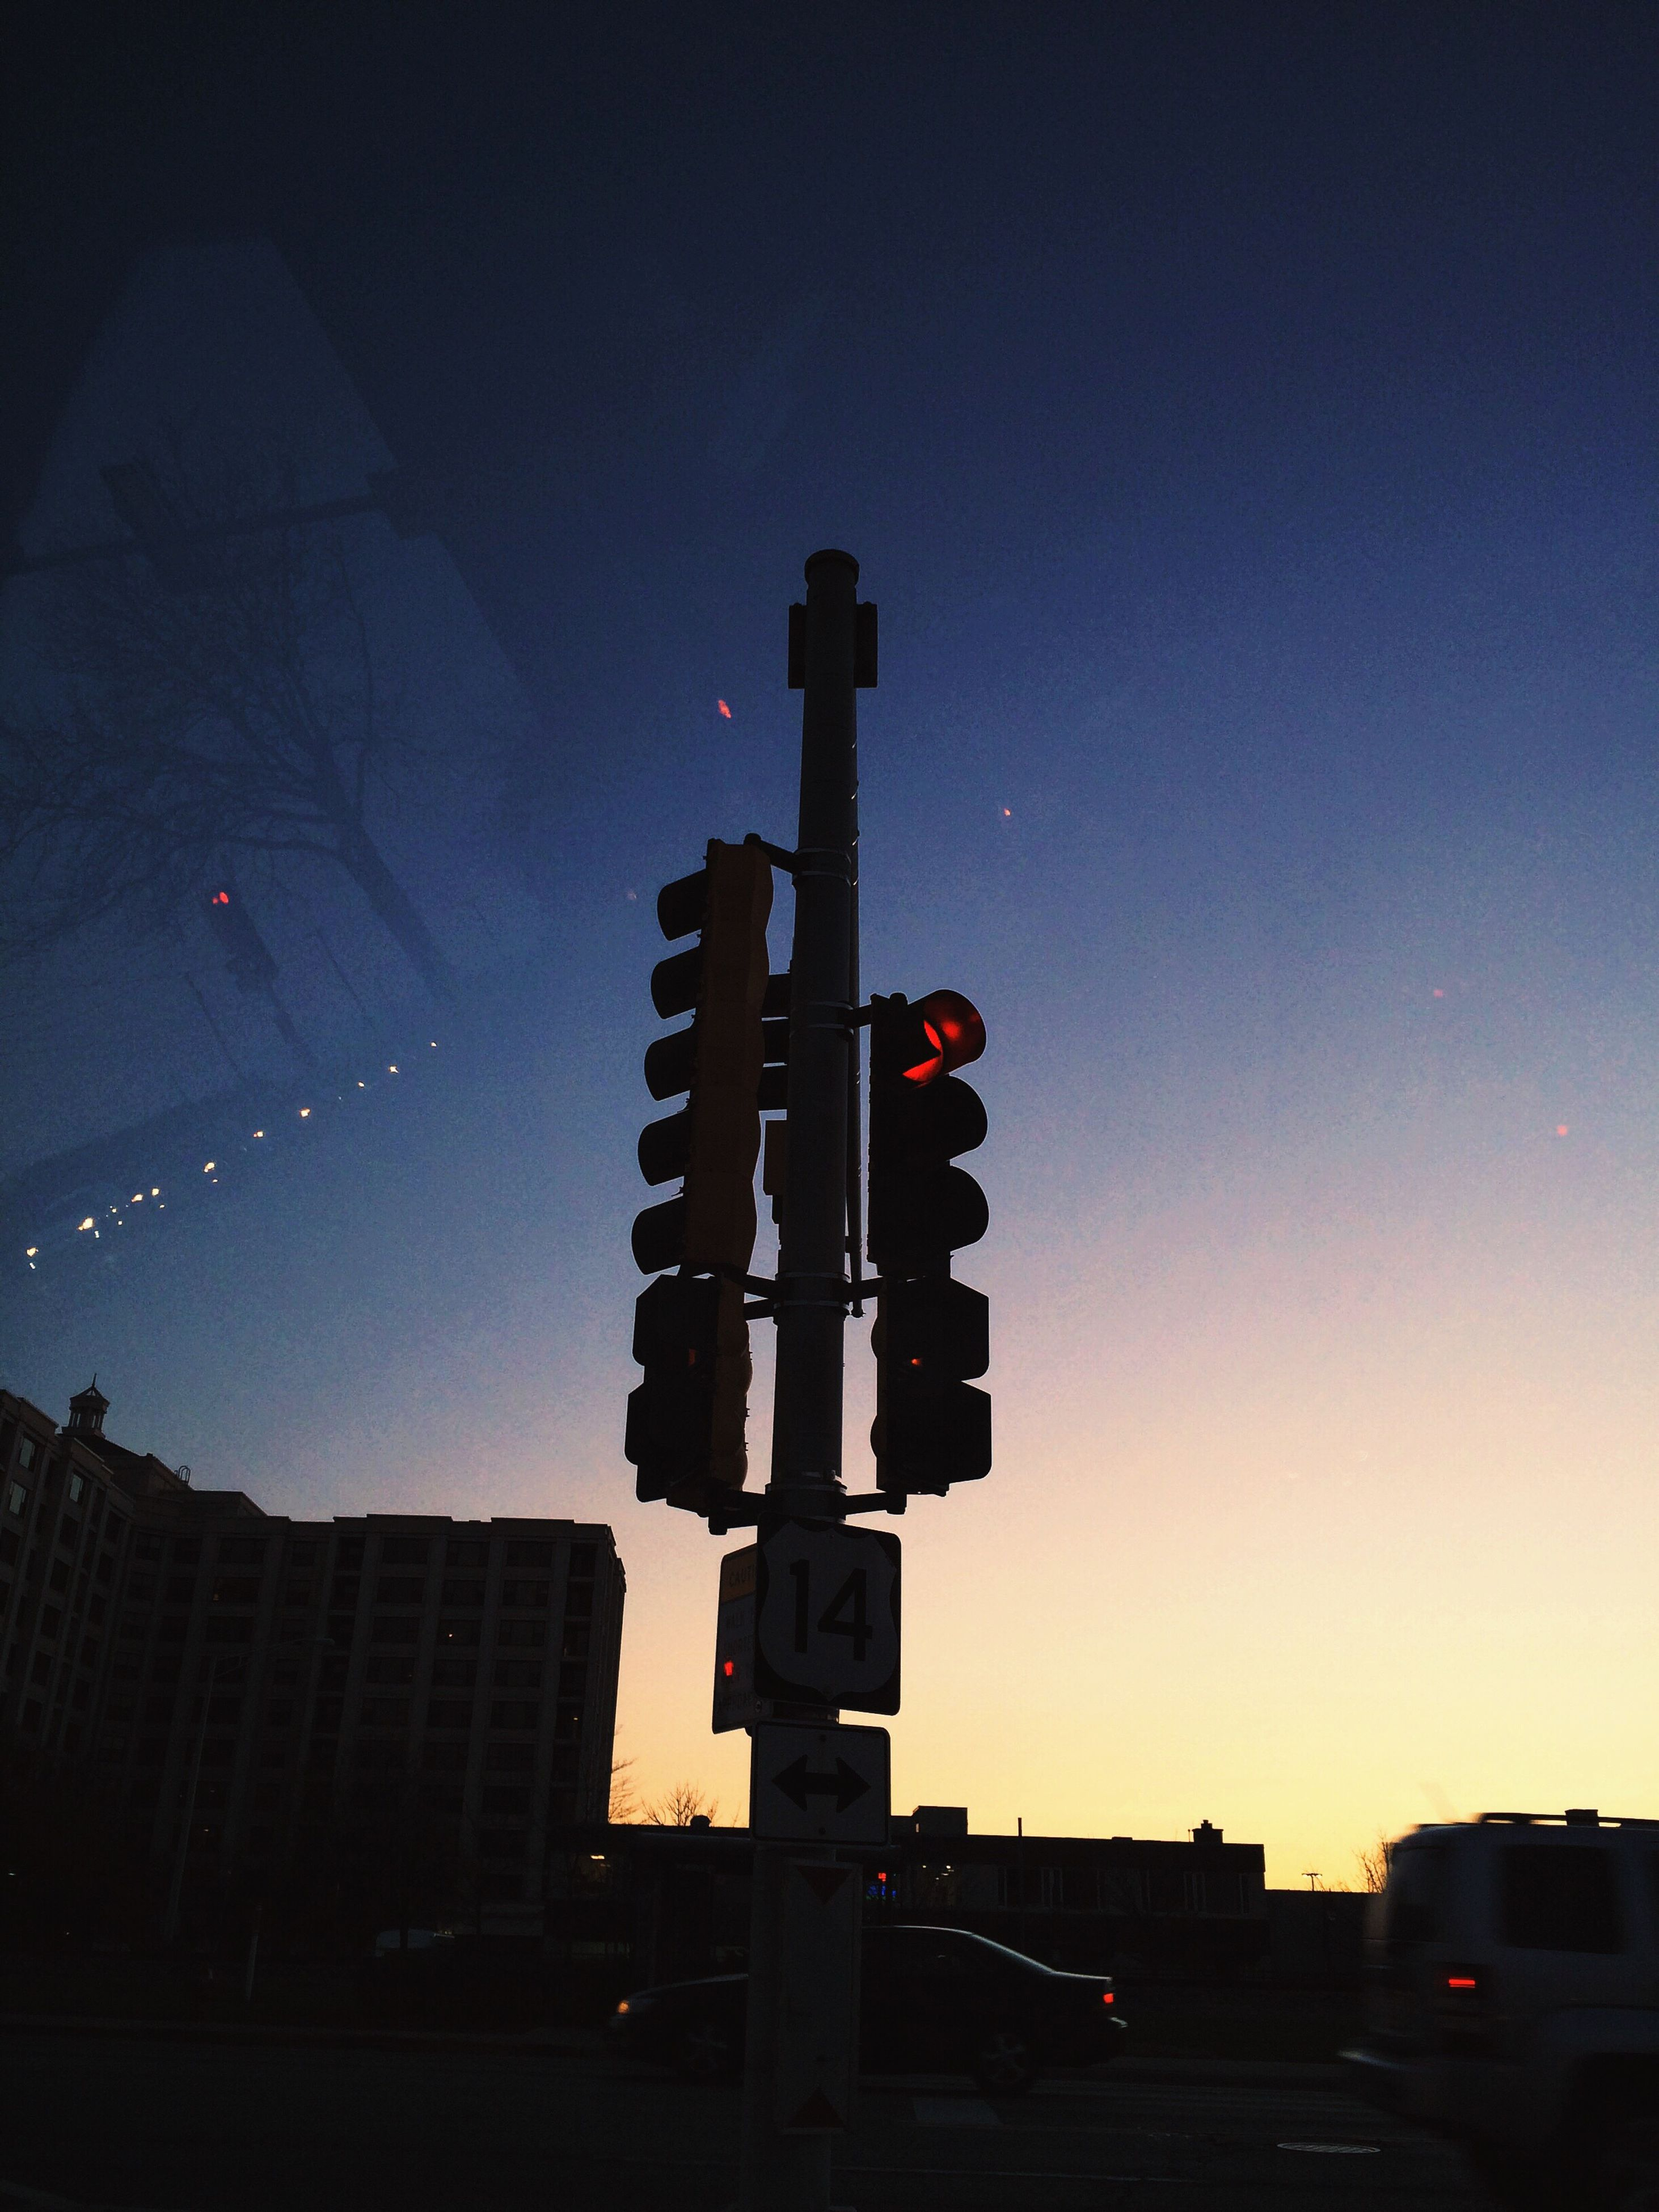 clear sky, night, building exterior, illuminated, low angle view, built structure, silhouette, architecture, transportation, copy space, city, sky, dusk, car, land vehicle, street light, mode of transport, outdoors, sunset, blue